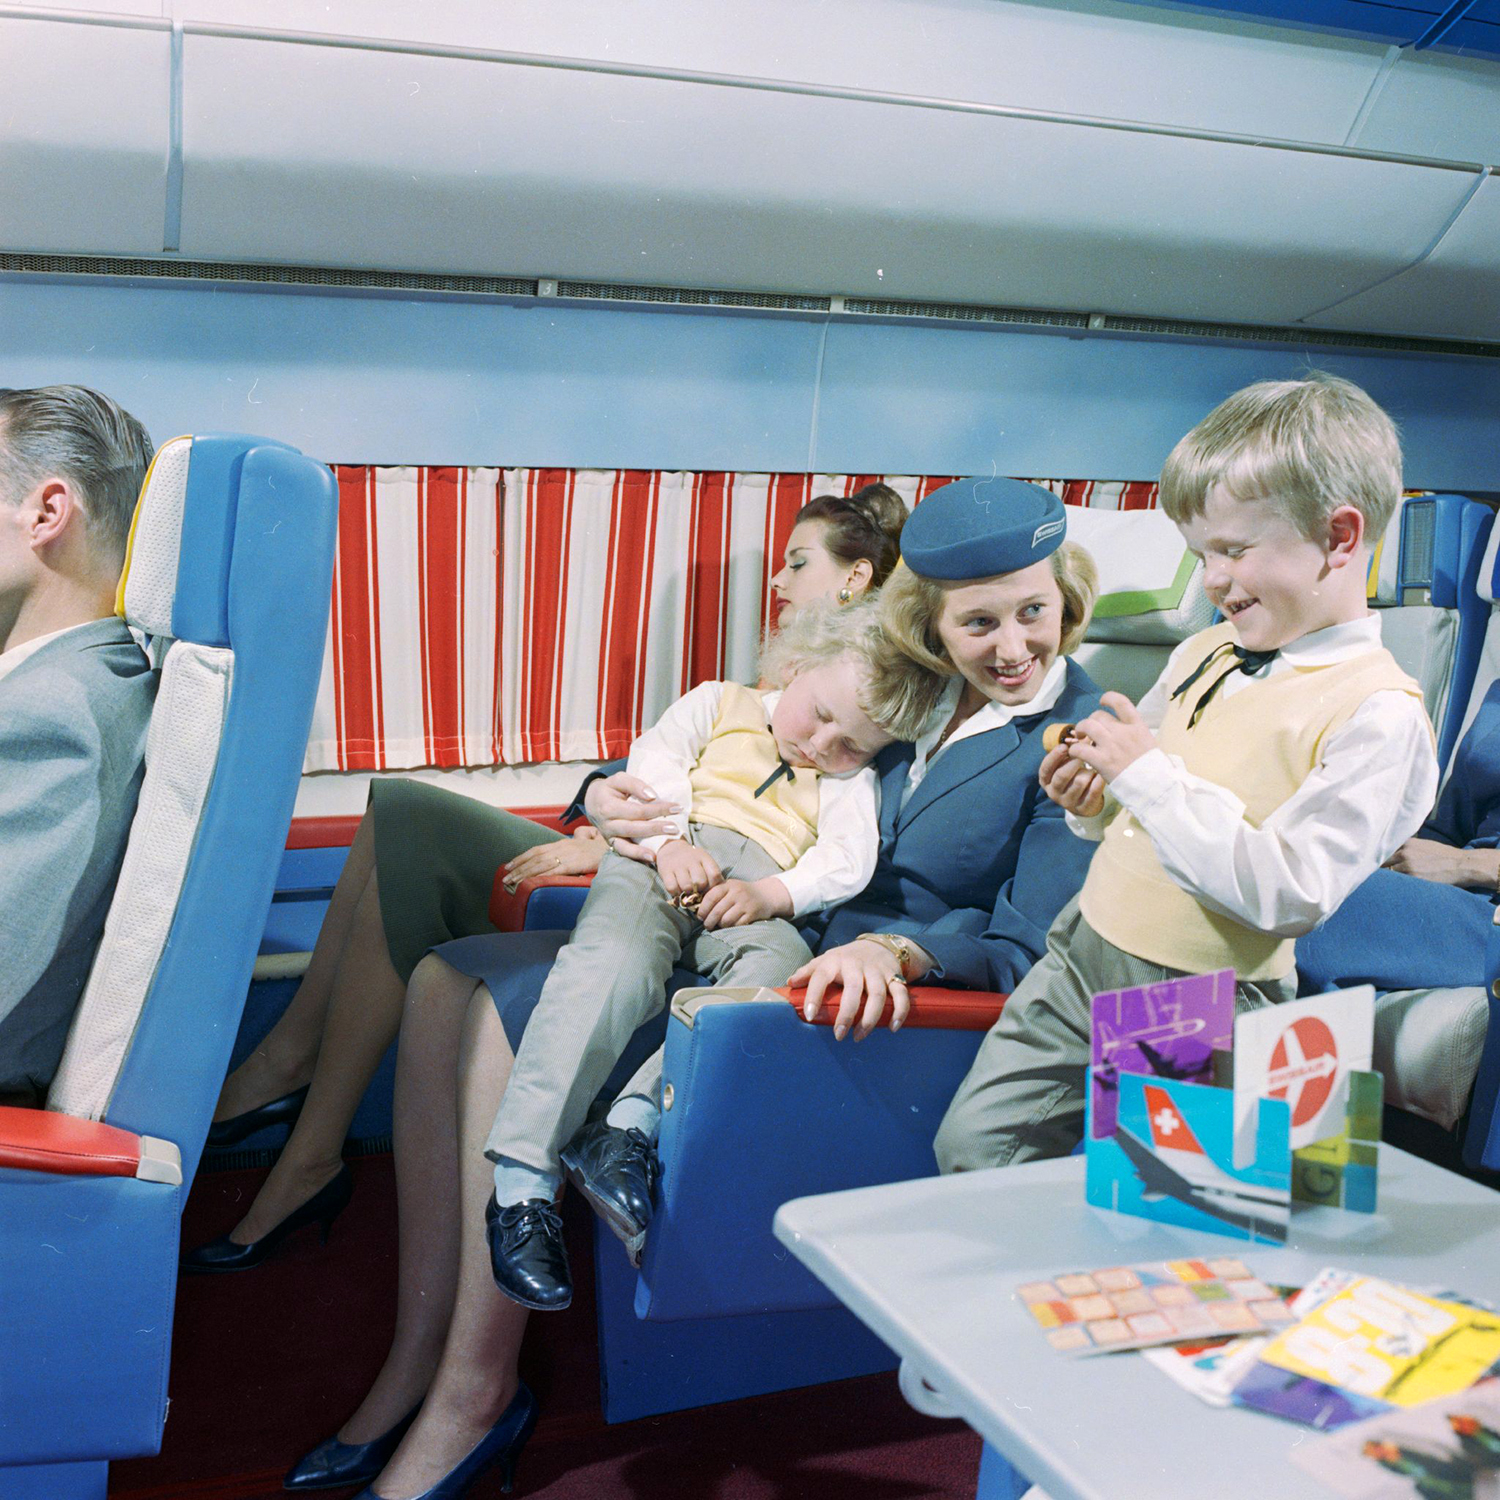 First Class Services First In Class: Living The Dream At 35,000 Ft: Flying First Class In The